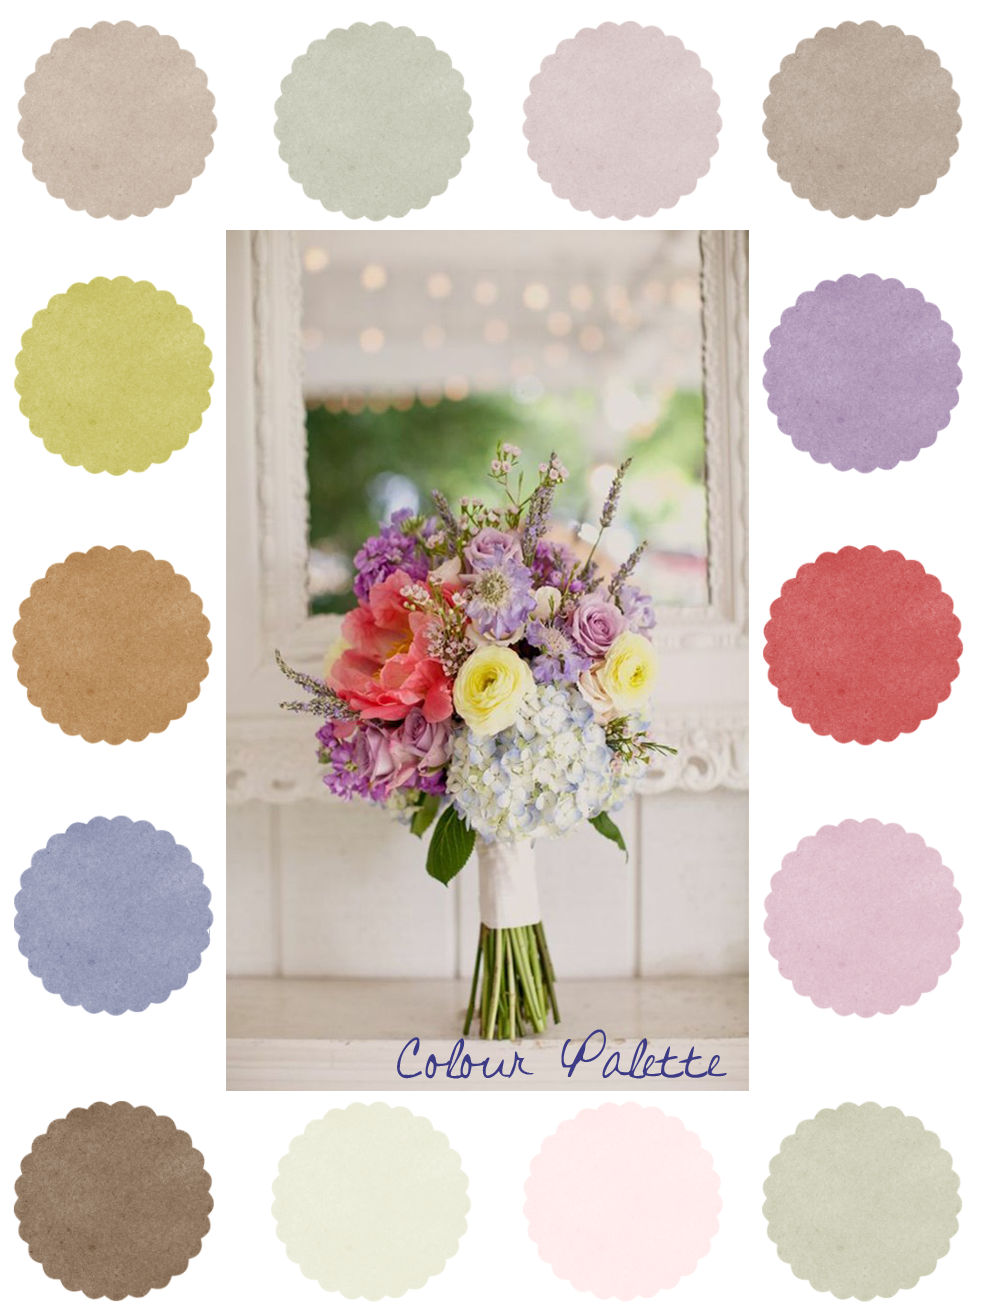 Colour palette  Image is from http://ruffledblog.com/